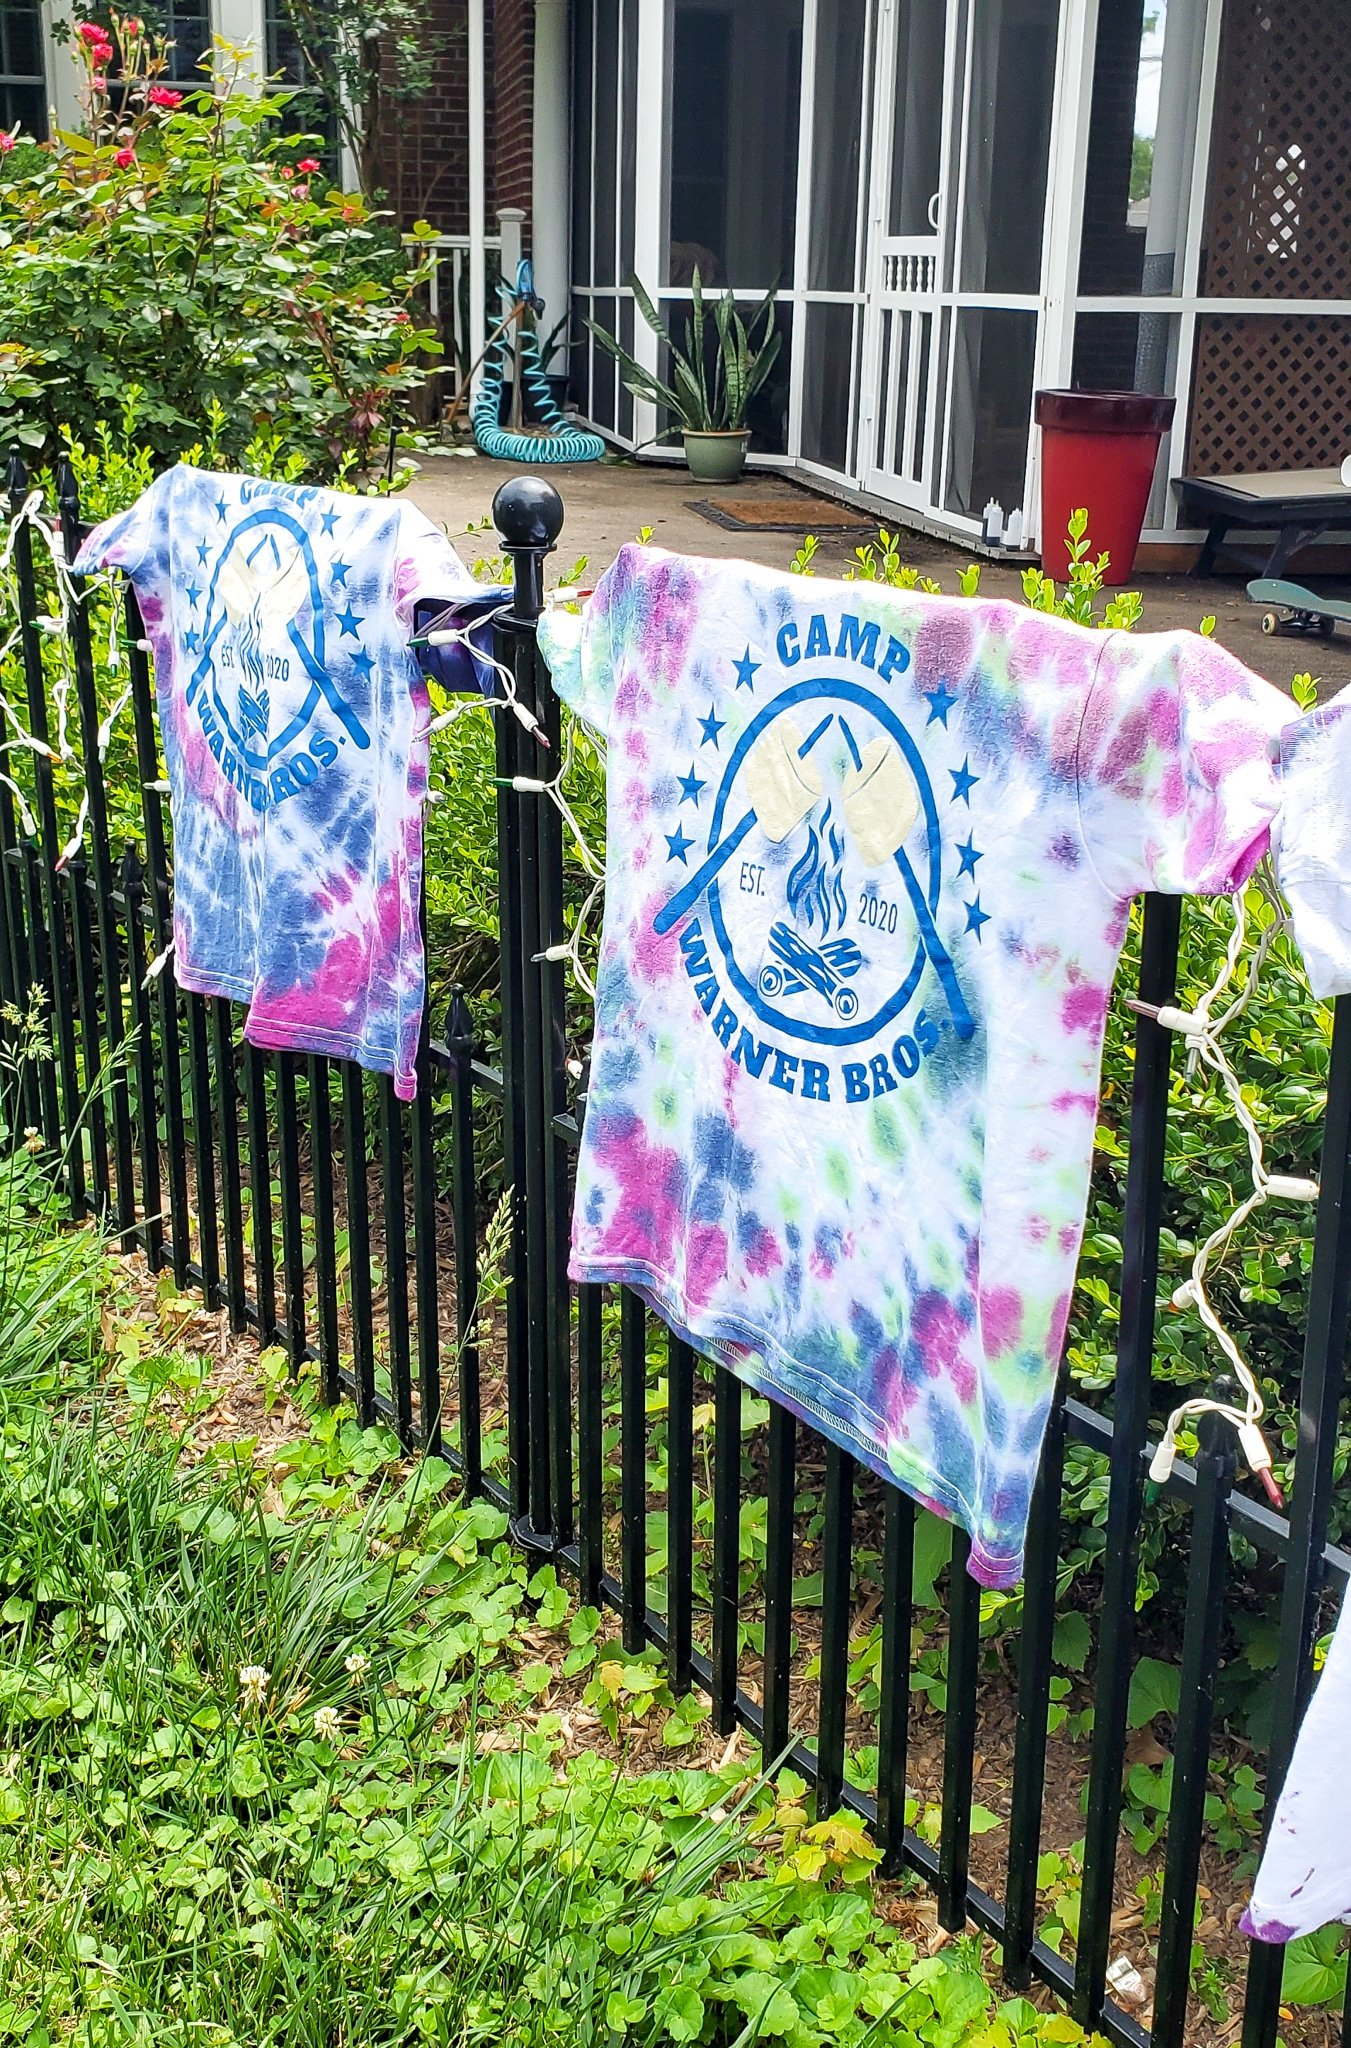 Camper Warner Bros. Tie-Dye Camper Shirts Drying. Join us as we adventure through 8 weeks of Virtual Camp Warner Bros. Each week will feature a new fun family friendly activity and a Warner Bros. Show or Movie. This week featured a Camper Shirt Tie-Dye activity.